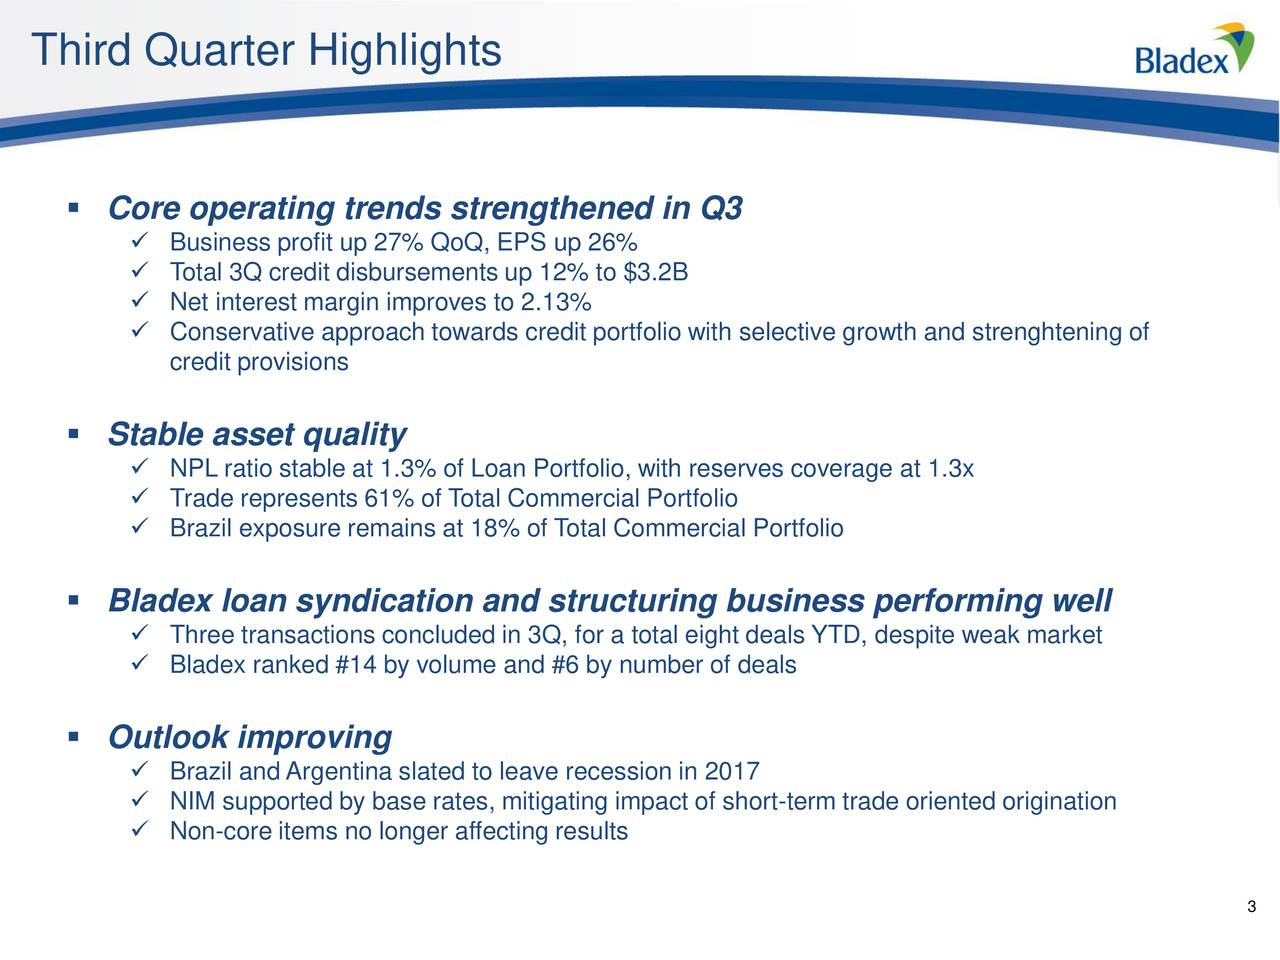 Core operating trends strengthened in Q3 Business profit up 27% QoQ, EPS up 26% Total 3Q credit disbursements up 12% to $3.2B Net interest margin improves to 2.13% Conservative approach towards credit portfolio with selective growth and strenghtening of credit provisions Stable asset quality NPL ratio stable at 1.3% of Loan Portfolio, with reserves coverage at 1.3x Trade represents 61% of Total Commercial Portfolio Brazil exposure remains at 18% of Total Commercial Portfolio Bladex loan syndication and structuring business performing well Three transactions concluded in 3Q, for a total eight deals YTD, despite weak market Bladex ranked #14 by volume and #6 by number of deals Outlook improving Brazil and Argentina slated to leave recession in 2017 NIM supported by base rates, mitigating impact of short-term trade oriented origination Non-core items no longer affecting results 3